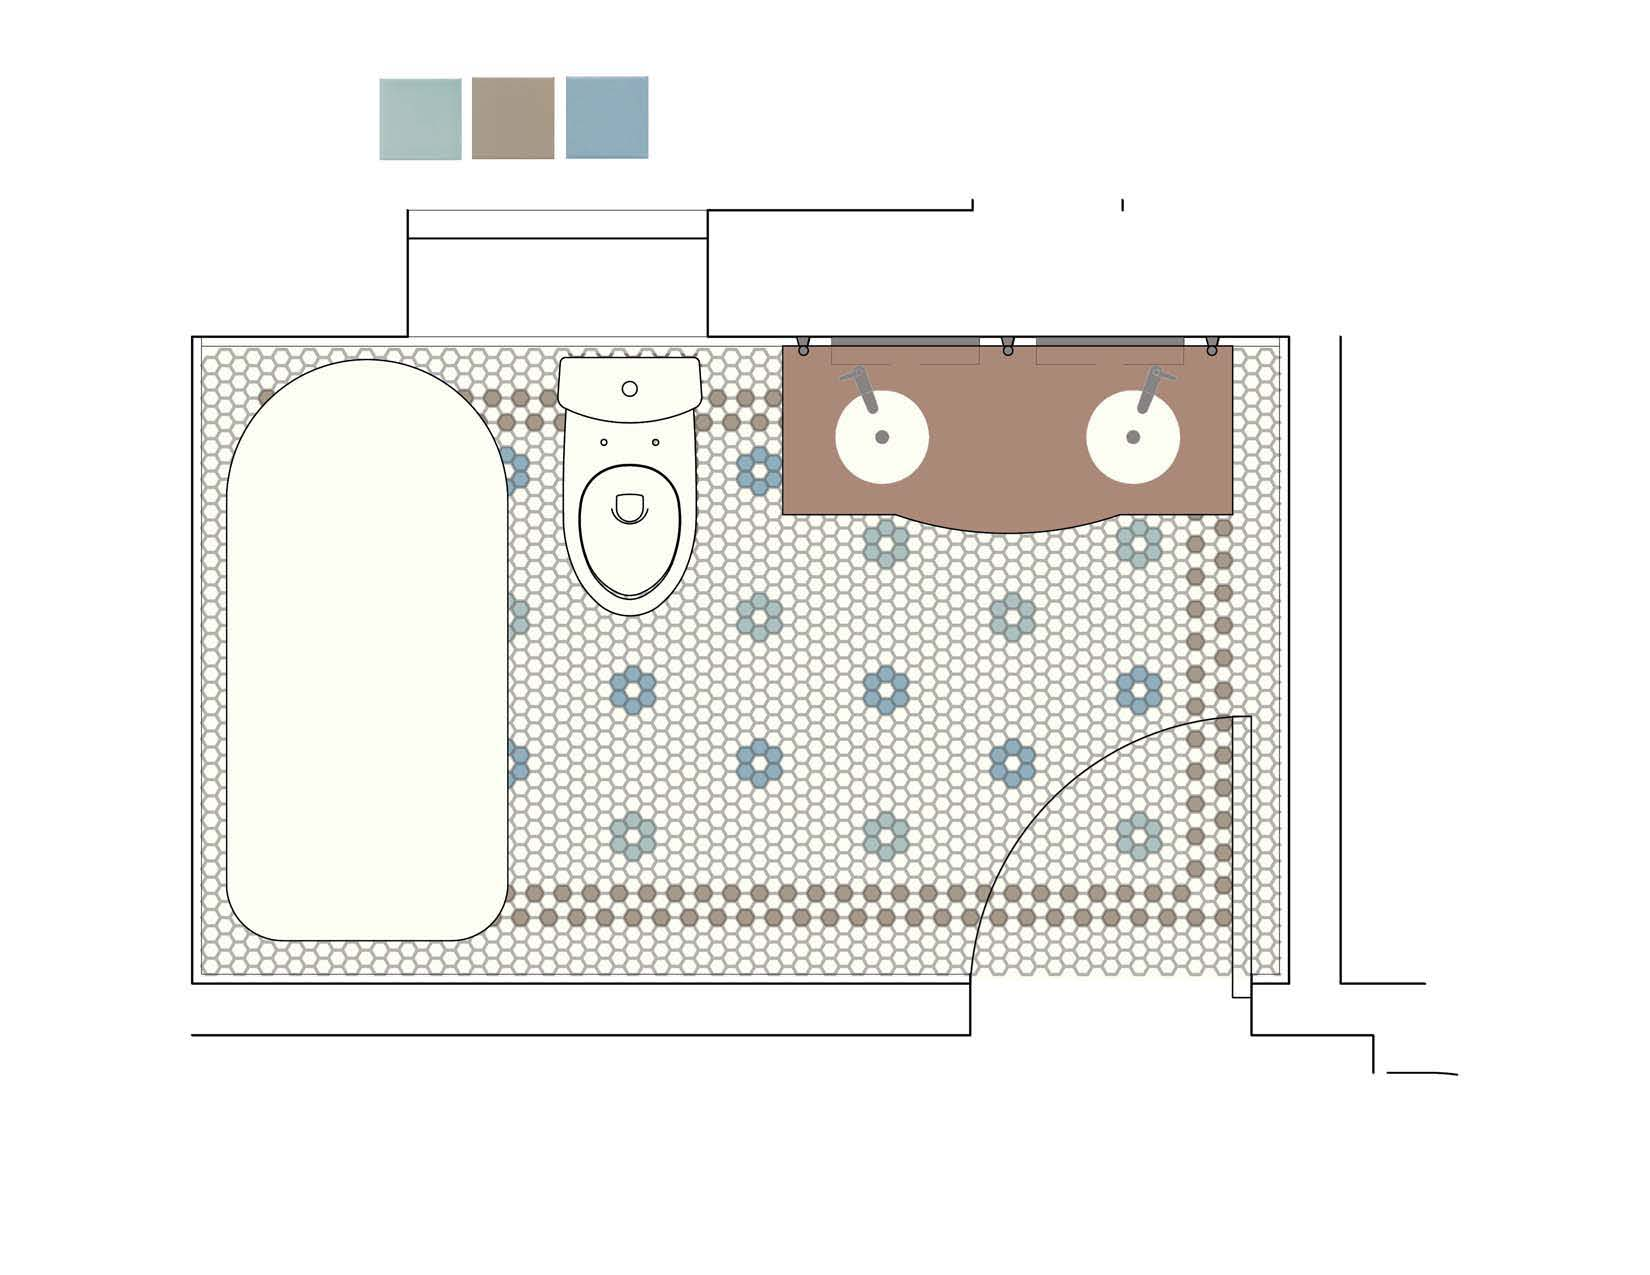 Bathroom Design Floor Plans Floor Plans